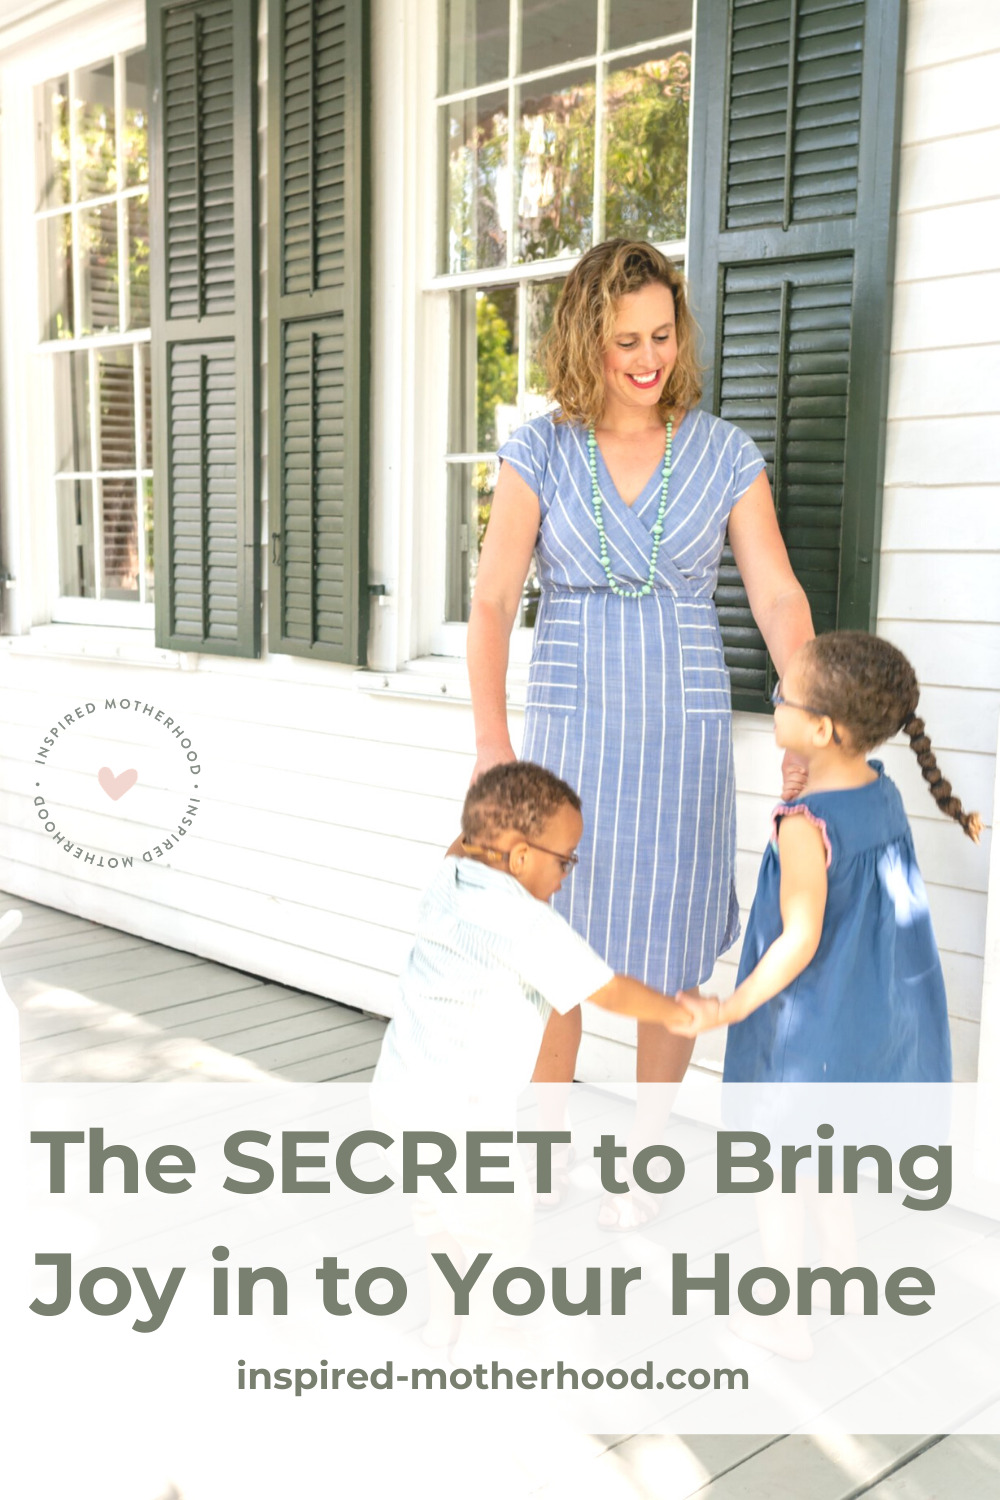 What is the secret to finding joy in your life? It's possible to find overflowing joy by following two things. Bring life, hope and laughter into your home with these tips.